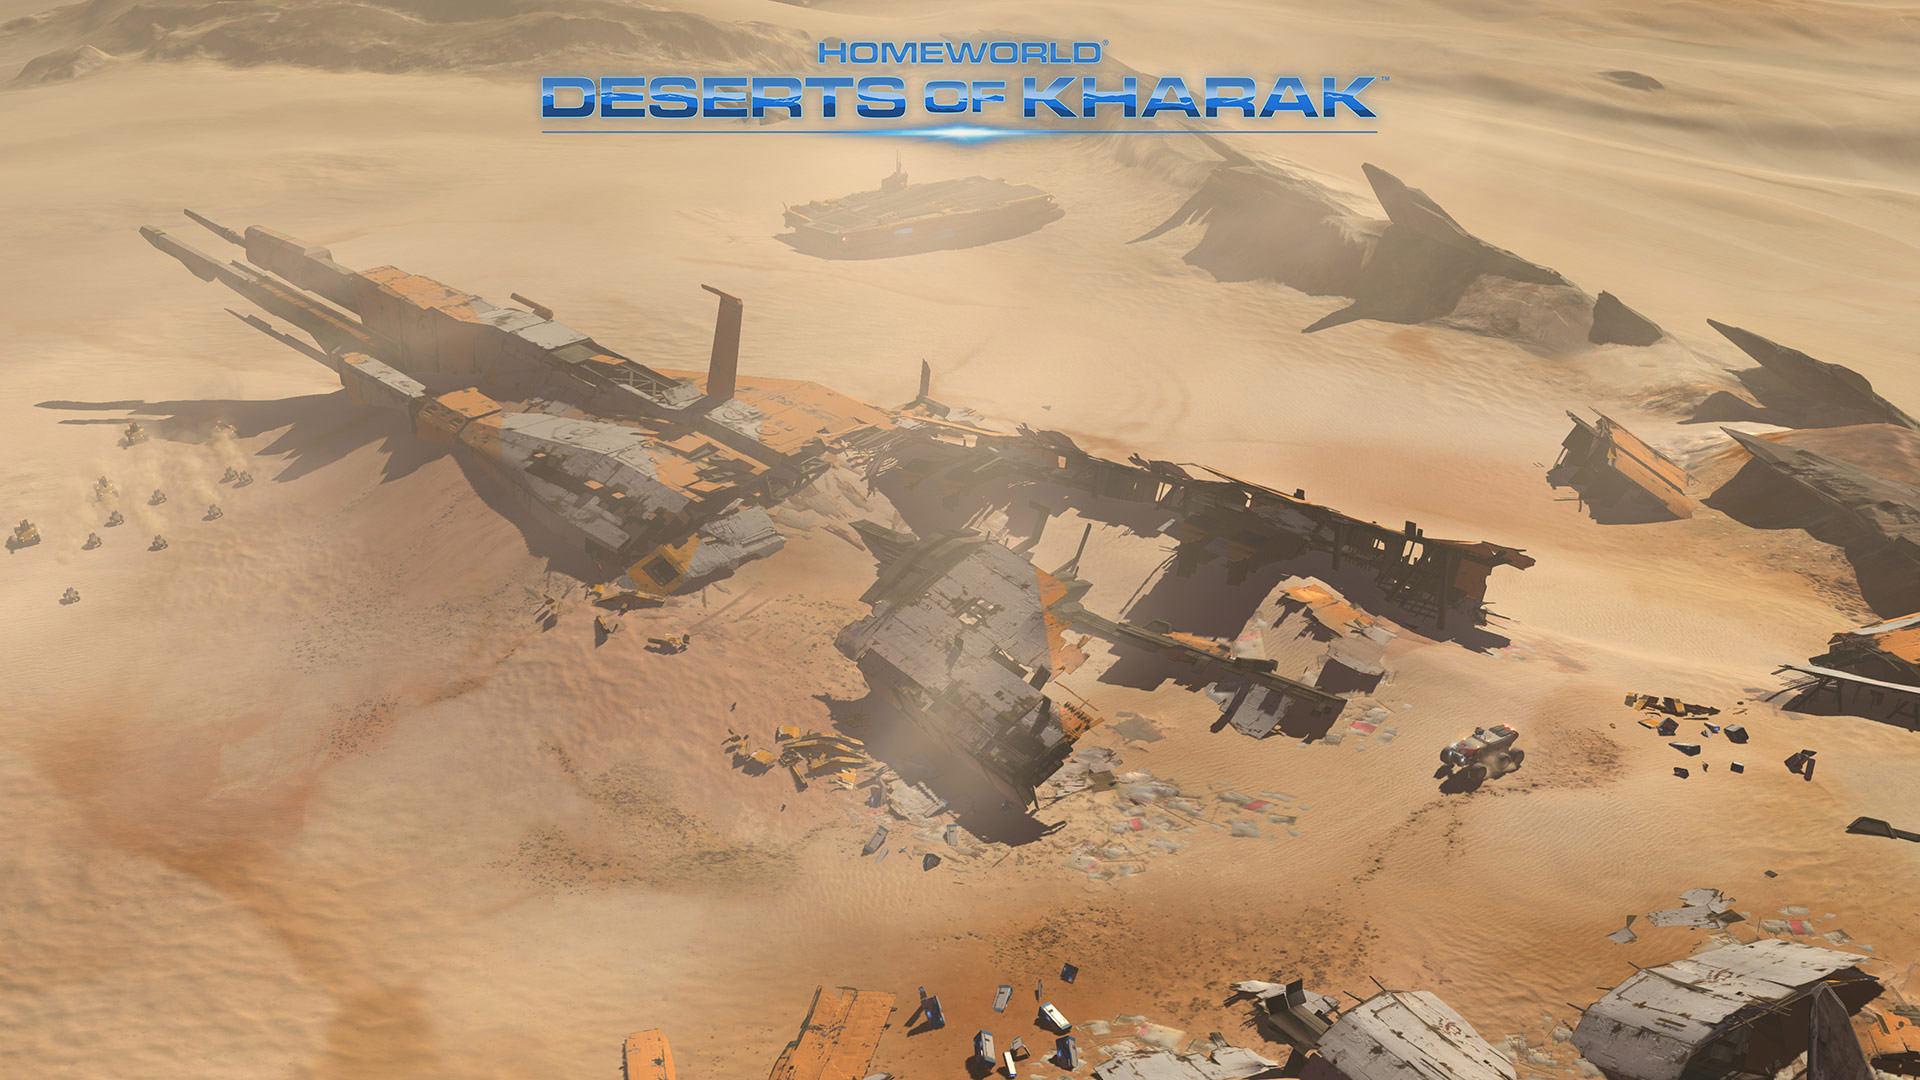 Free Homeworld: Deserts of Kharak Wallpaper in 1920x1080